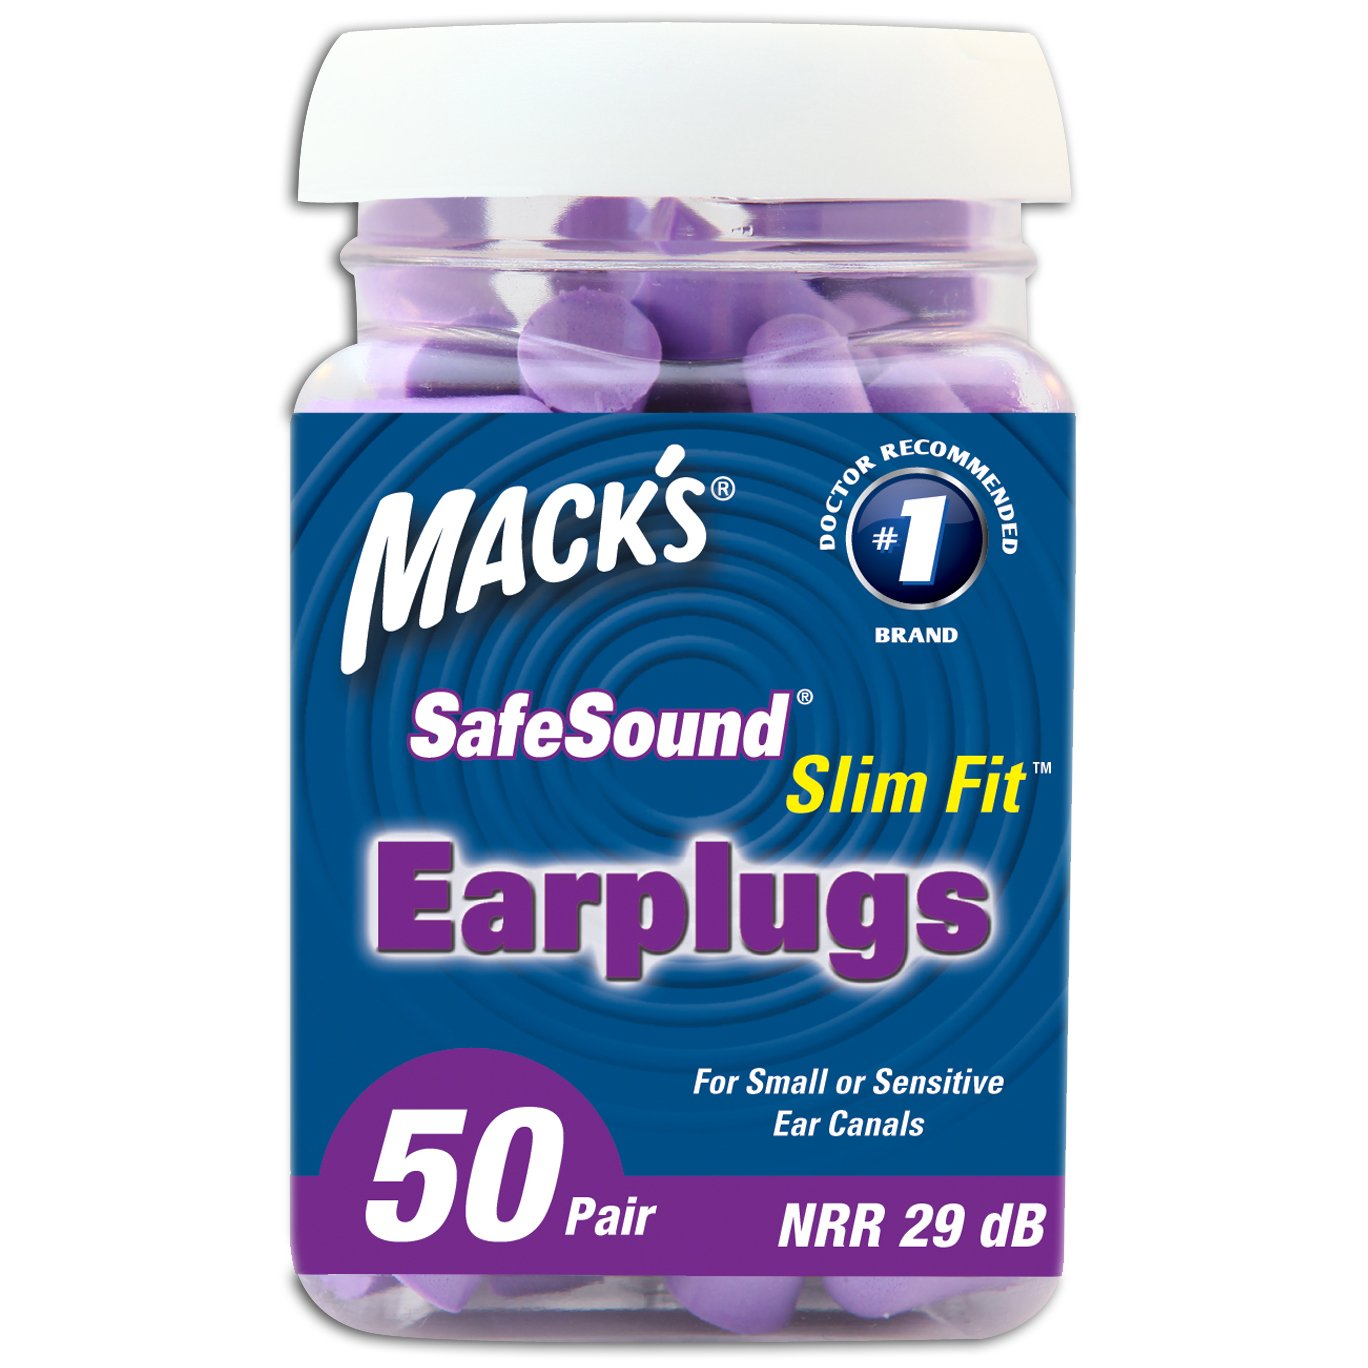 Mack's Slim Fit Soft Foam Earplugs, 50 Pair - Small Ear Plugs for Sleeping, Snoring, Traveling, Concerts, Shooting Sports and Power Tools by Mack's (Image #2)